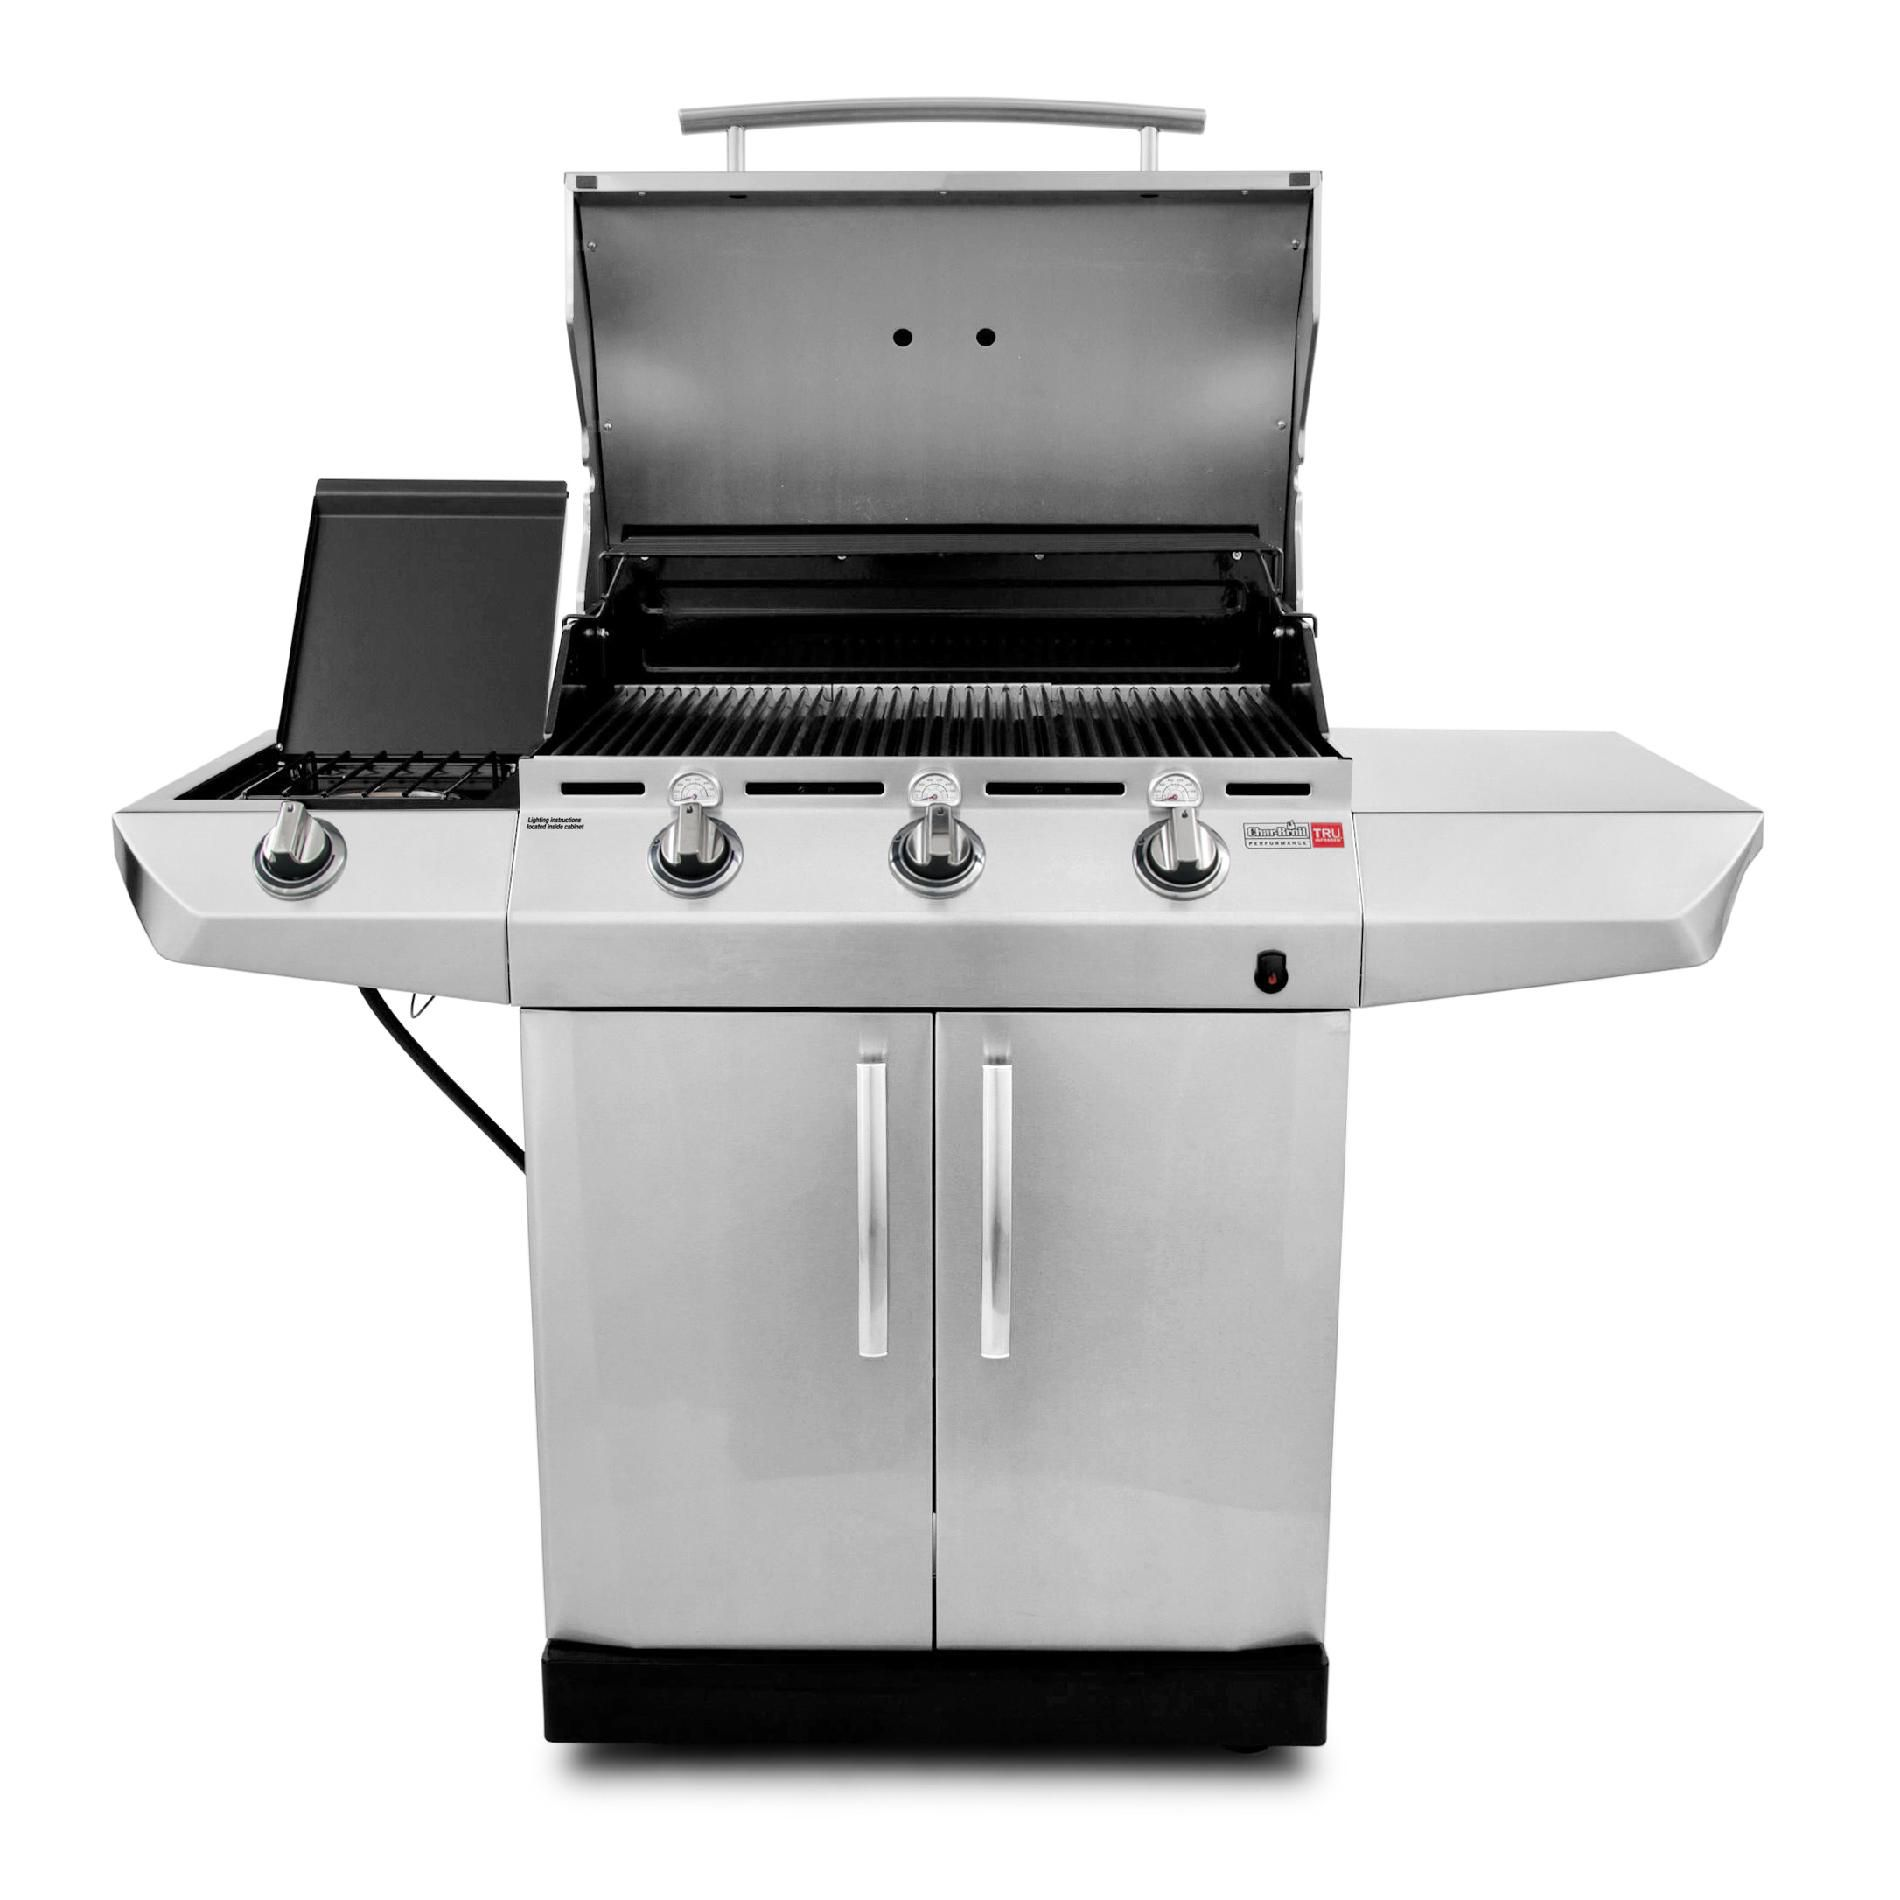 Char-Broil TRU-Infrared Performance 3-Burner Gas Grill with Side Burner and Storage Cabinet - Dual Fuel Capable